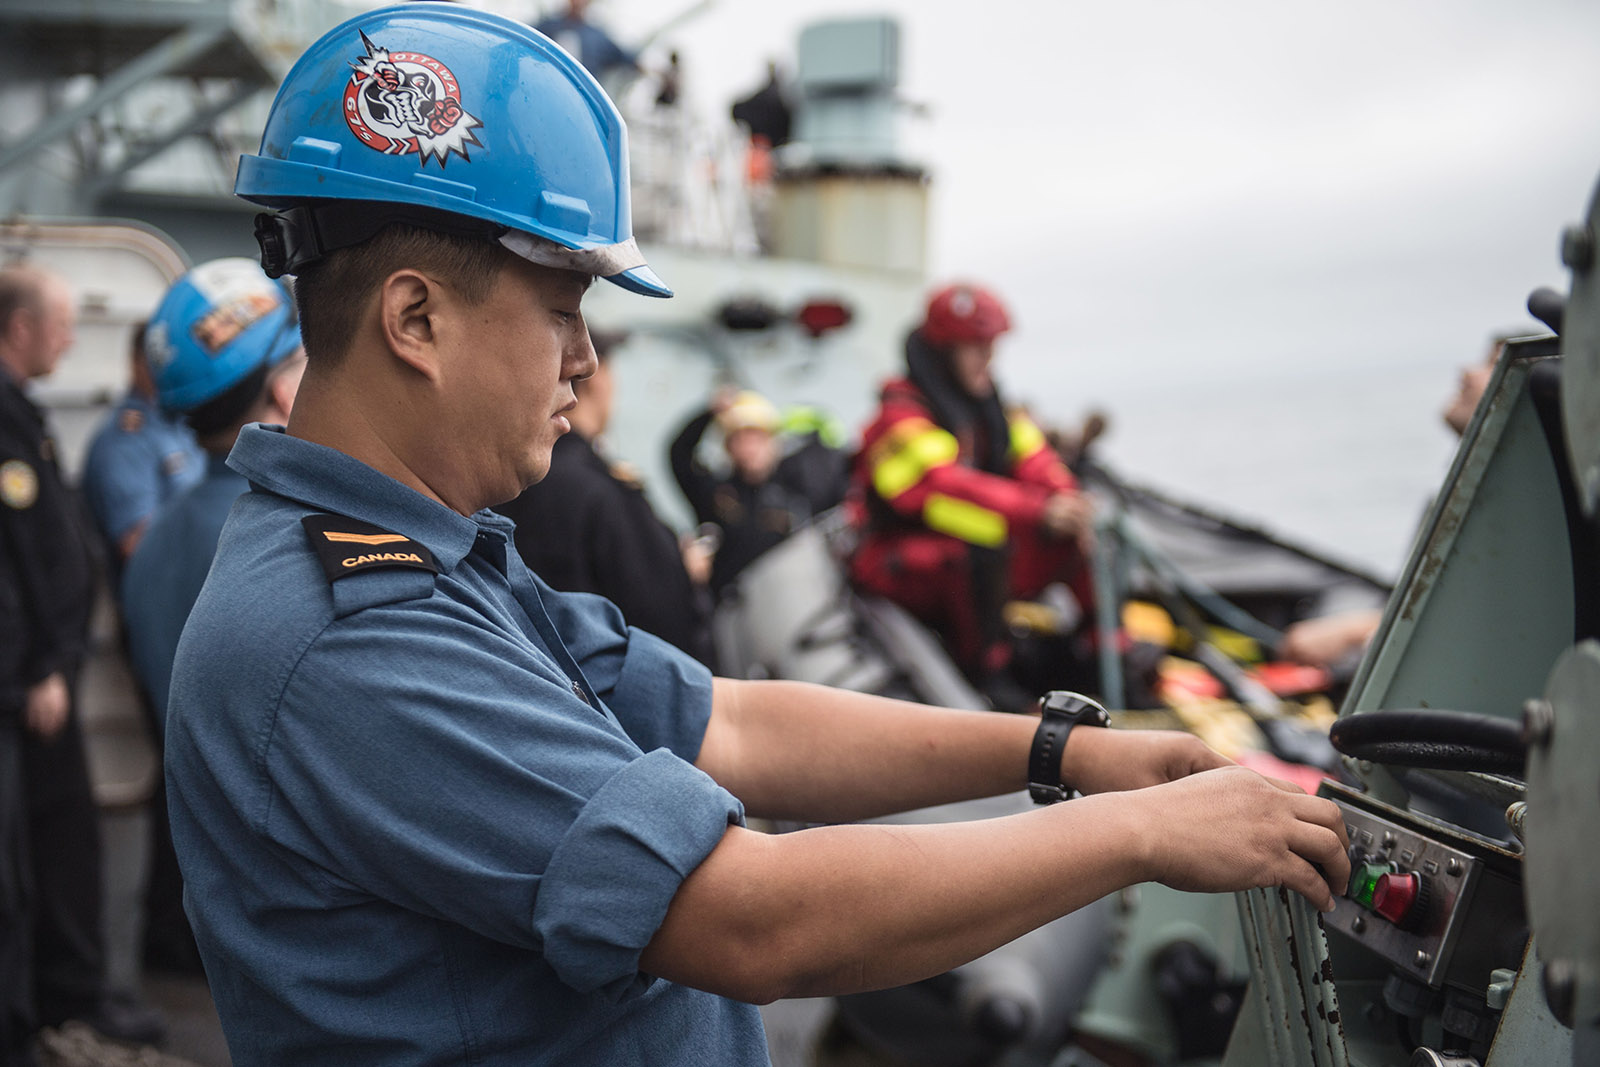 Leading Seaman Gu Yeon Kim operates the crane during a Man Overboard exercise on August 7 2019 onboard HMCS OTTAWA while deployed on OPERATIONS PROJECTION and NEON.